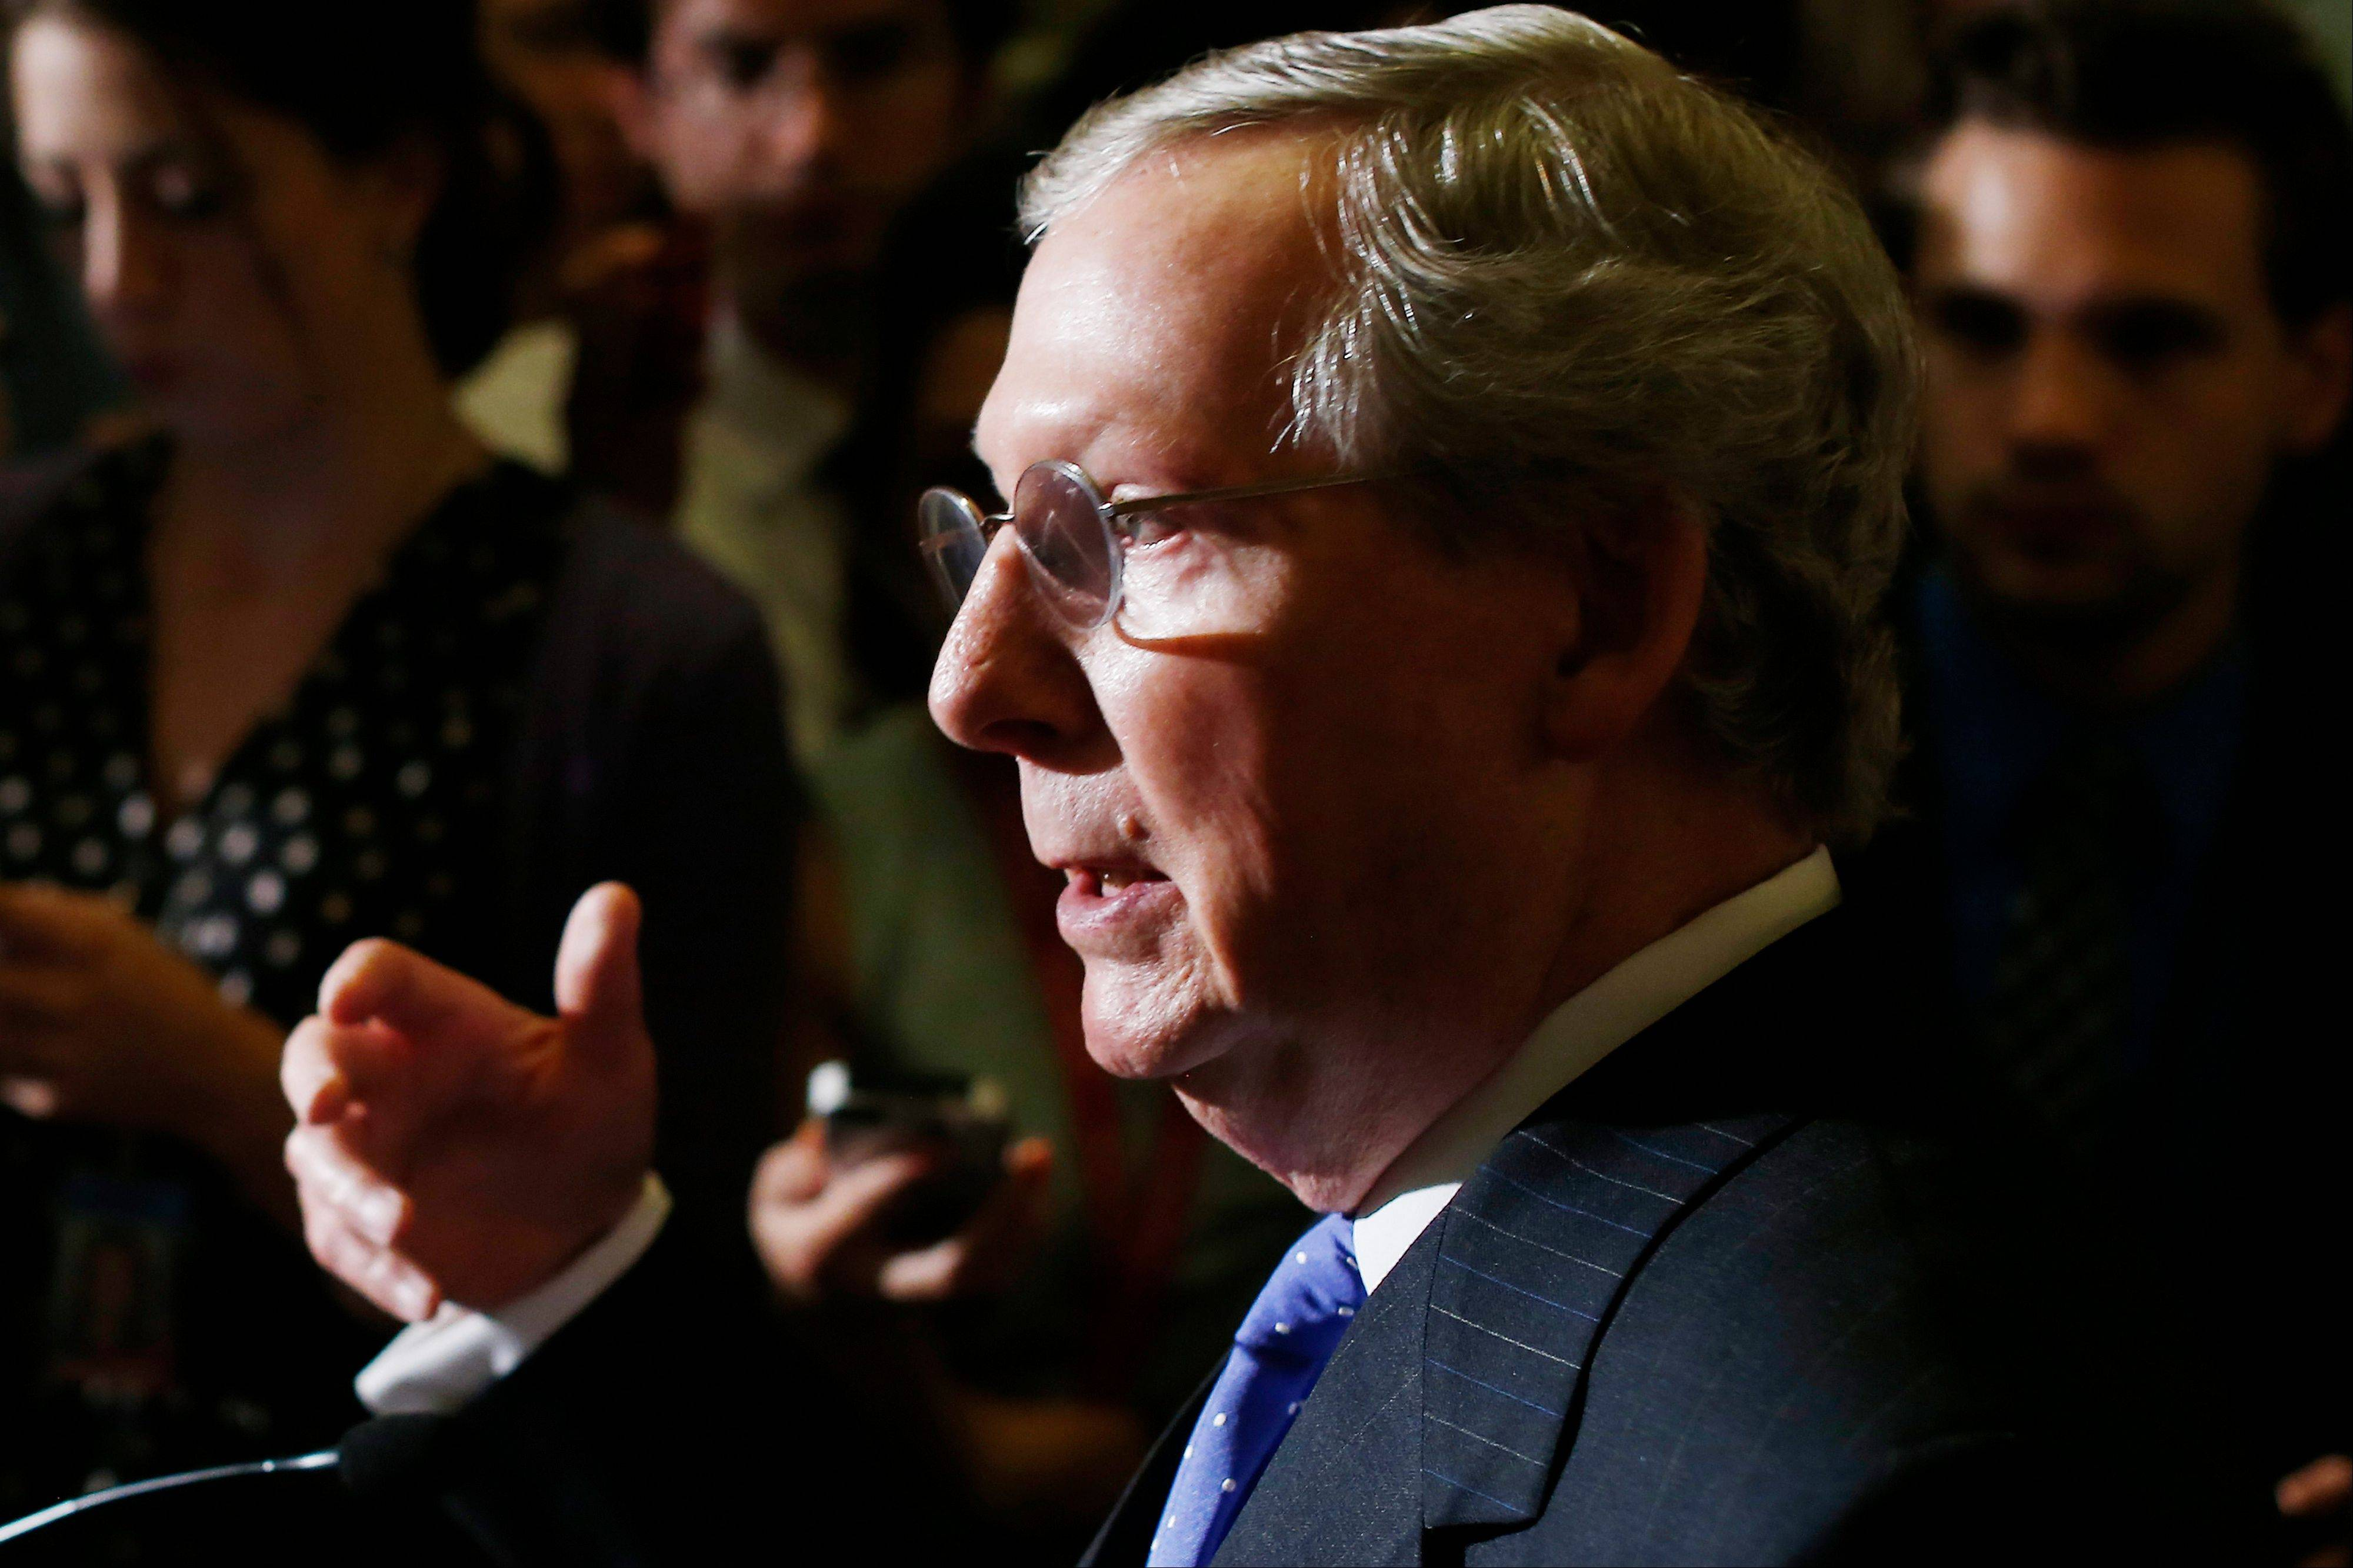 Senate Republican Leader Mitch McConnell of Kentucky speaks to reporters as lawmakers moved toward resolving their feud over filibusters of White House appointees on Capitol Hill in Washington, Tuesday, July 16, 2013.